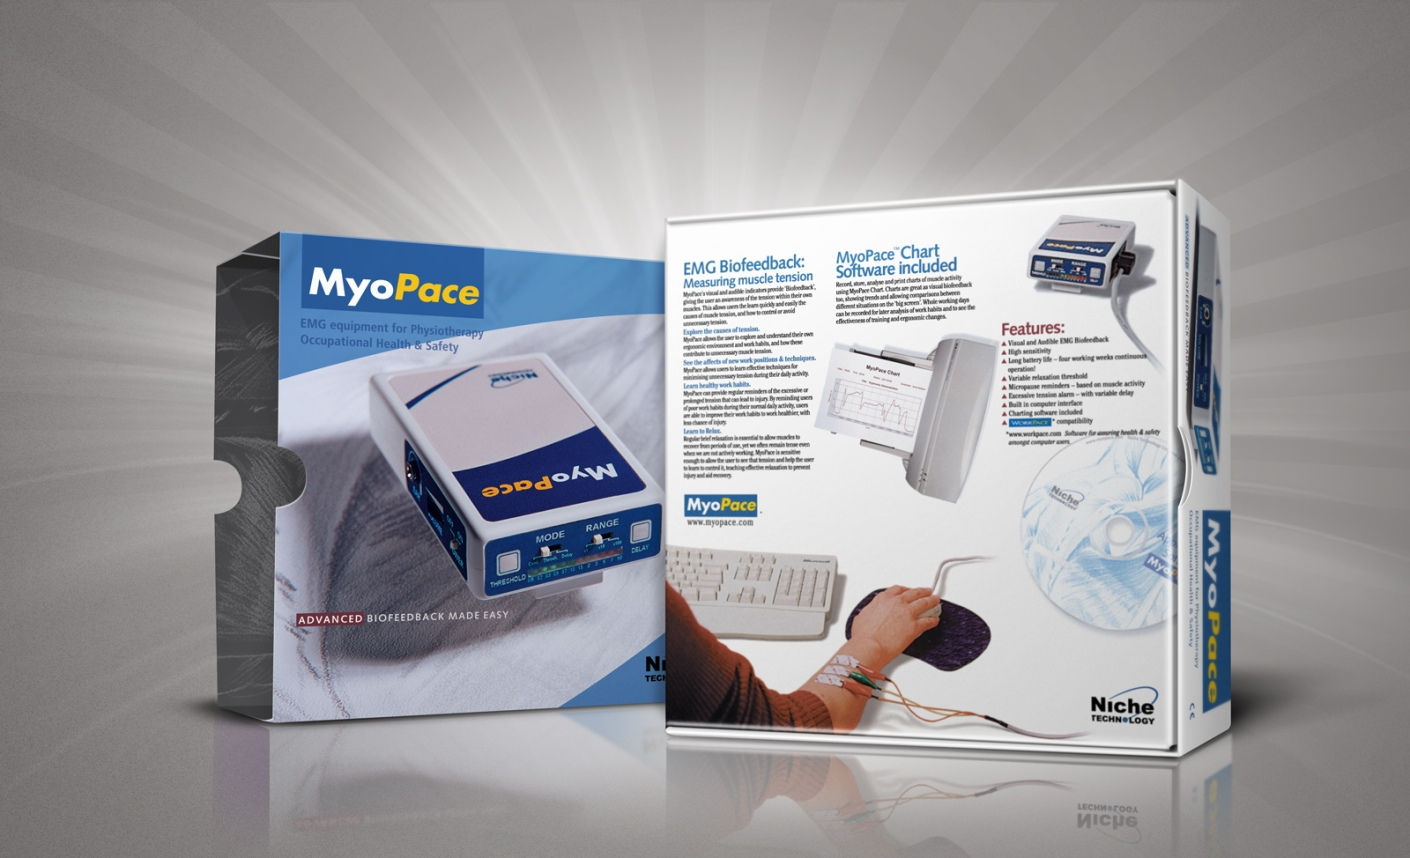 Packaging carton for MyoPace EMG Equipment for Physiotherapy